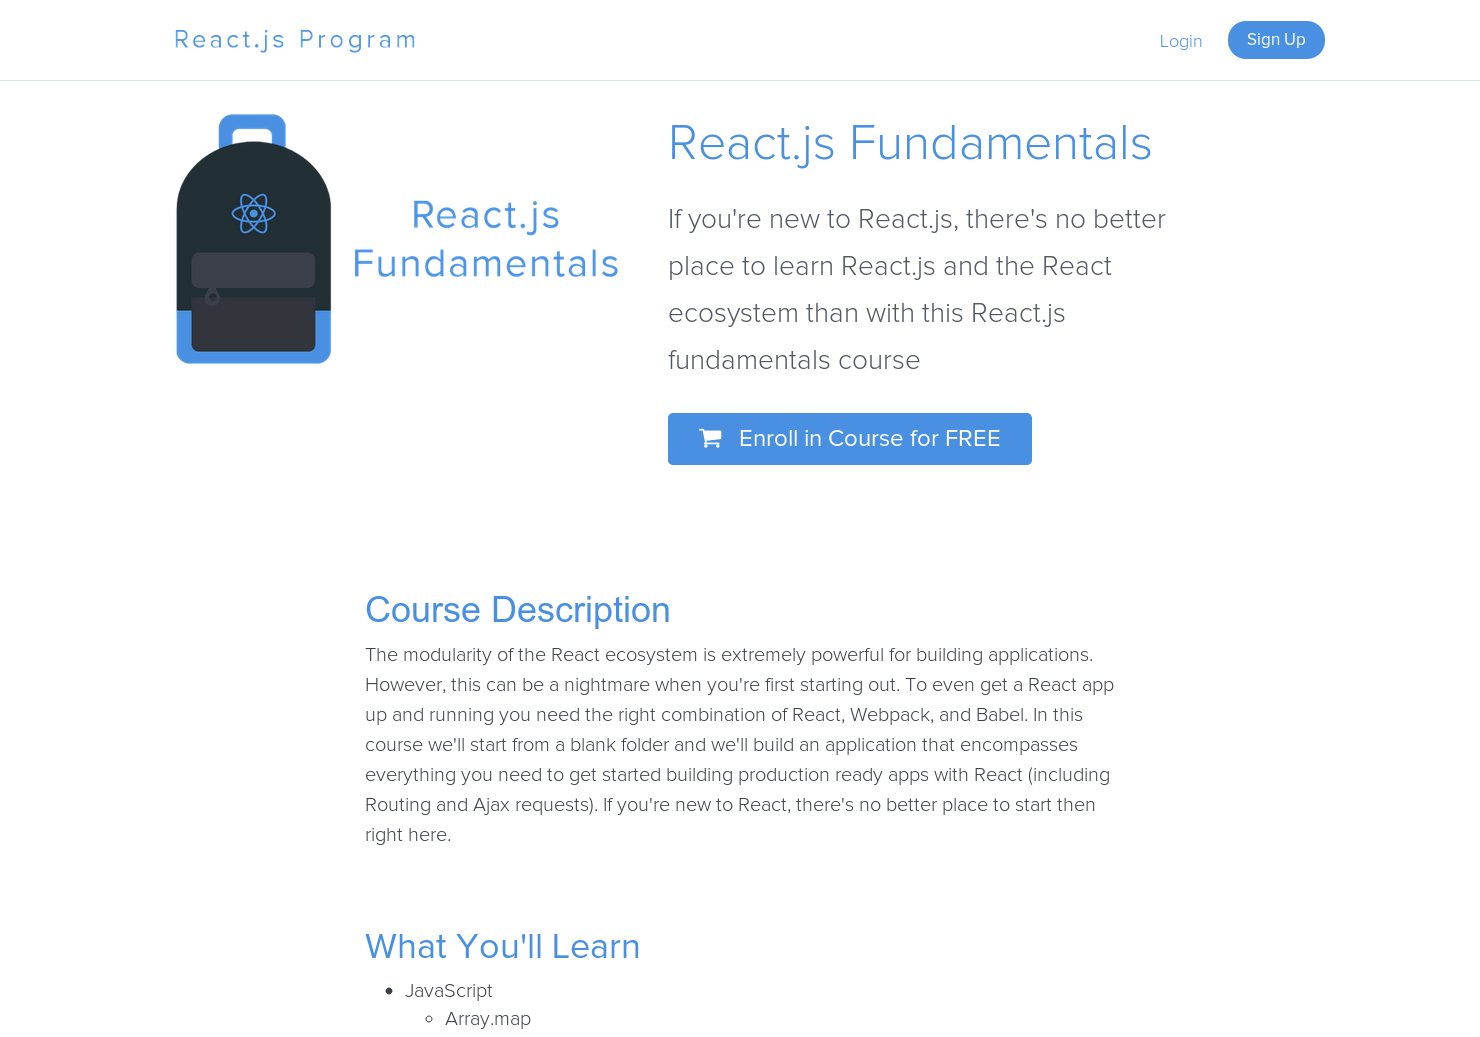 Free React js Fundamentals Course - A free course that